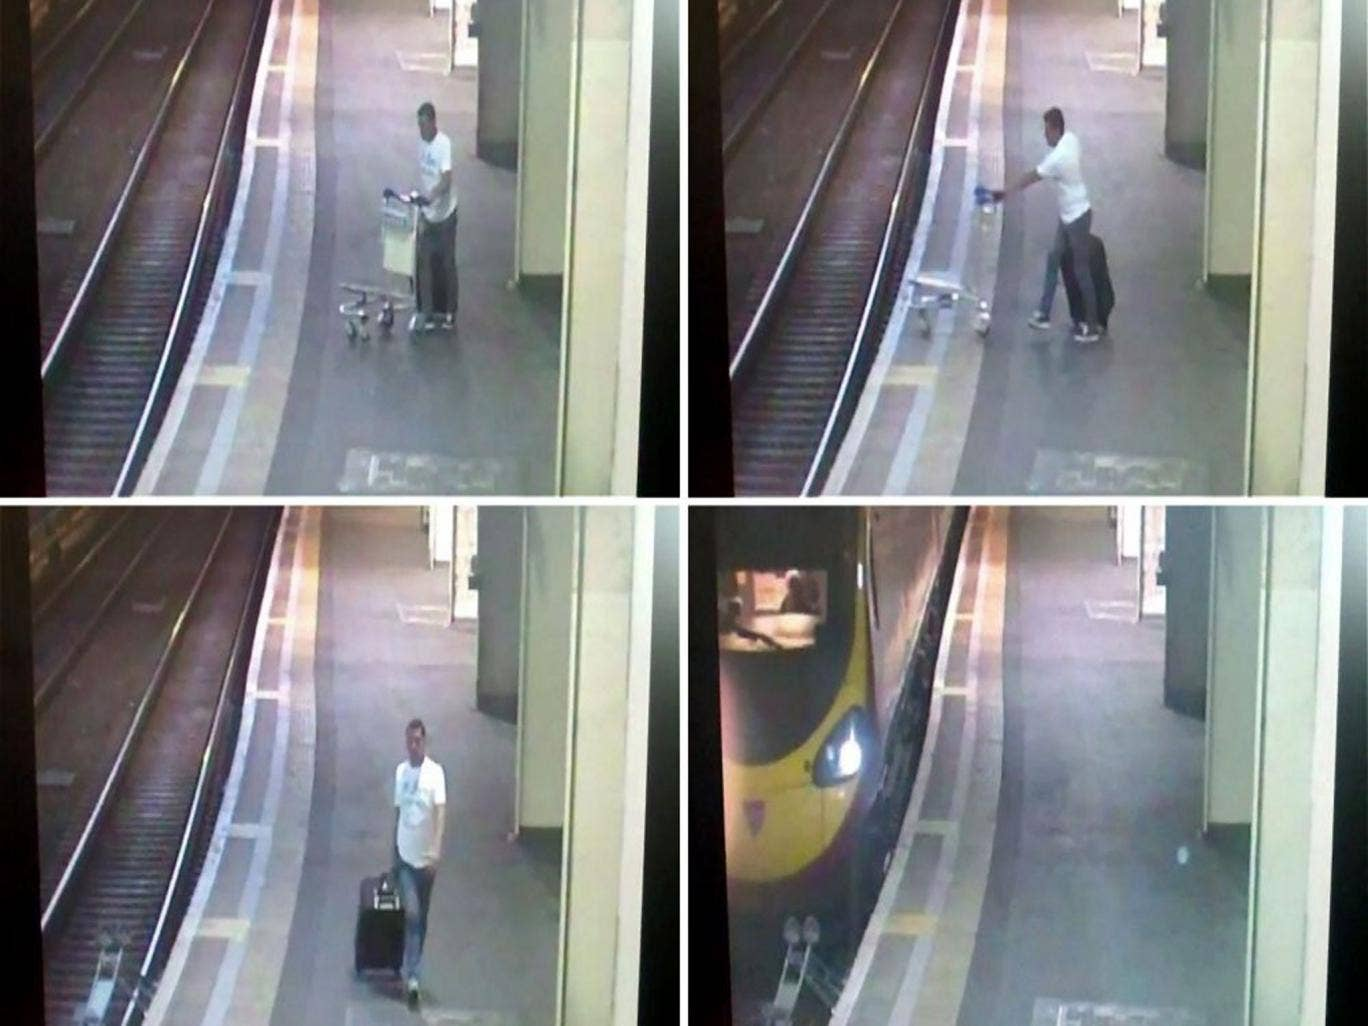 Handout CCTV grabs issued by British Transport Police of a man pushing a suitcase trolley onto the tracks at Euston station in London.